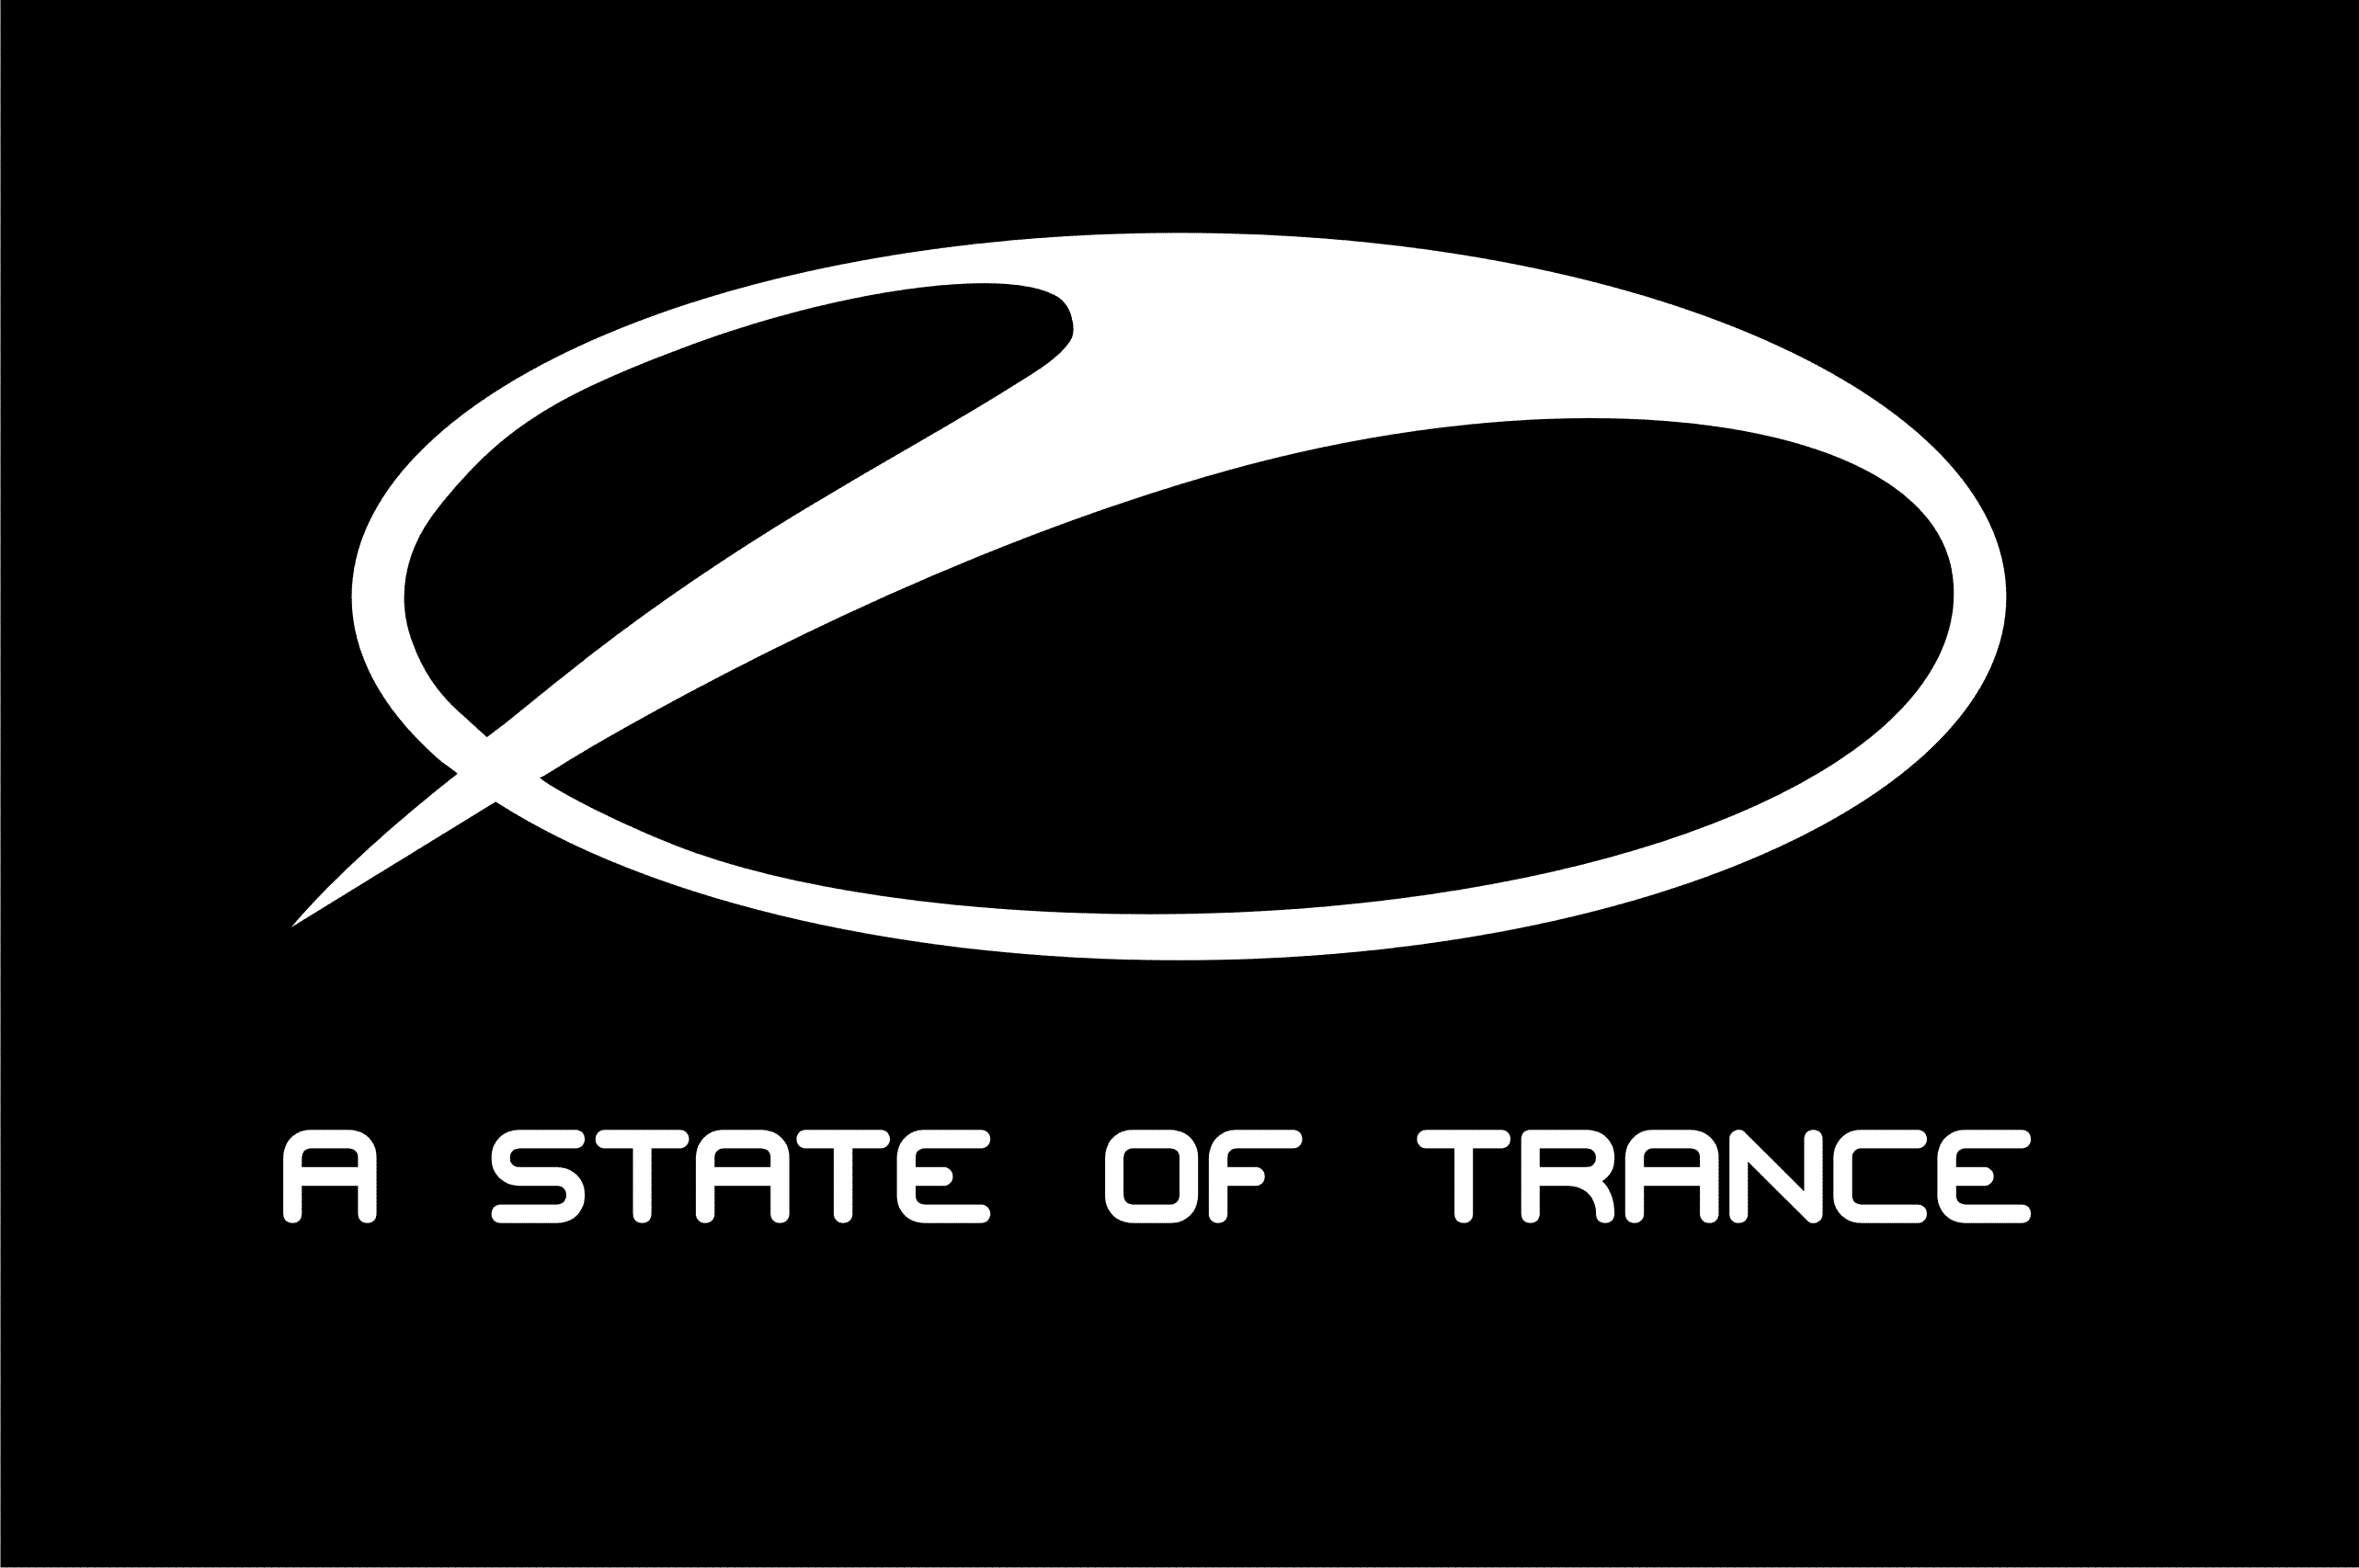 A state of trance 2006 - 3